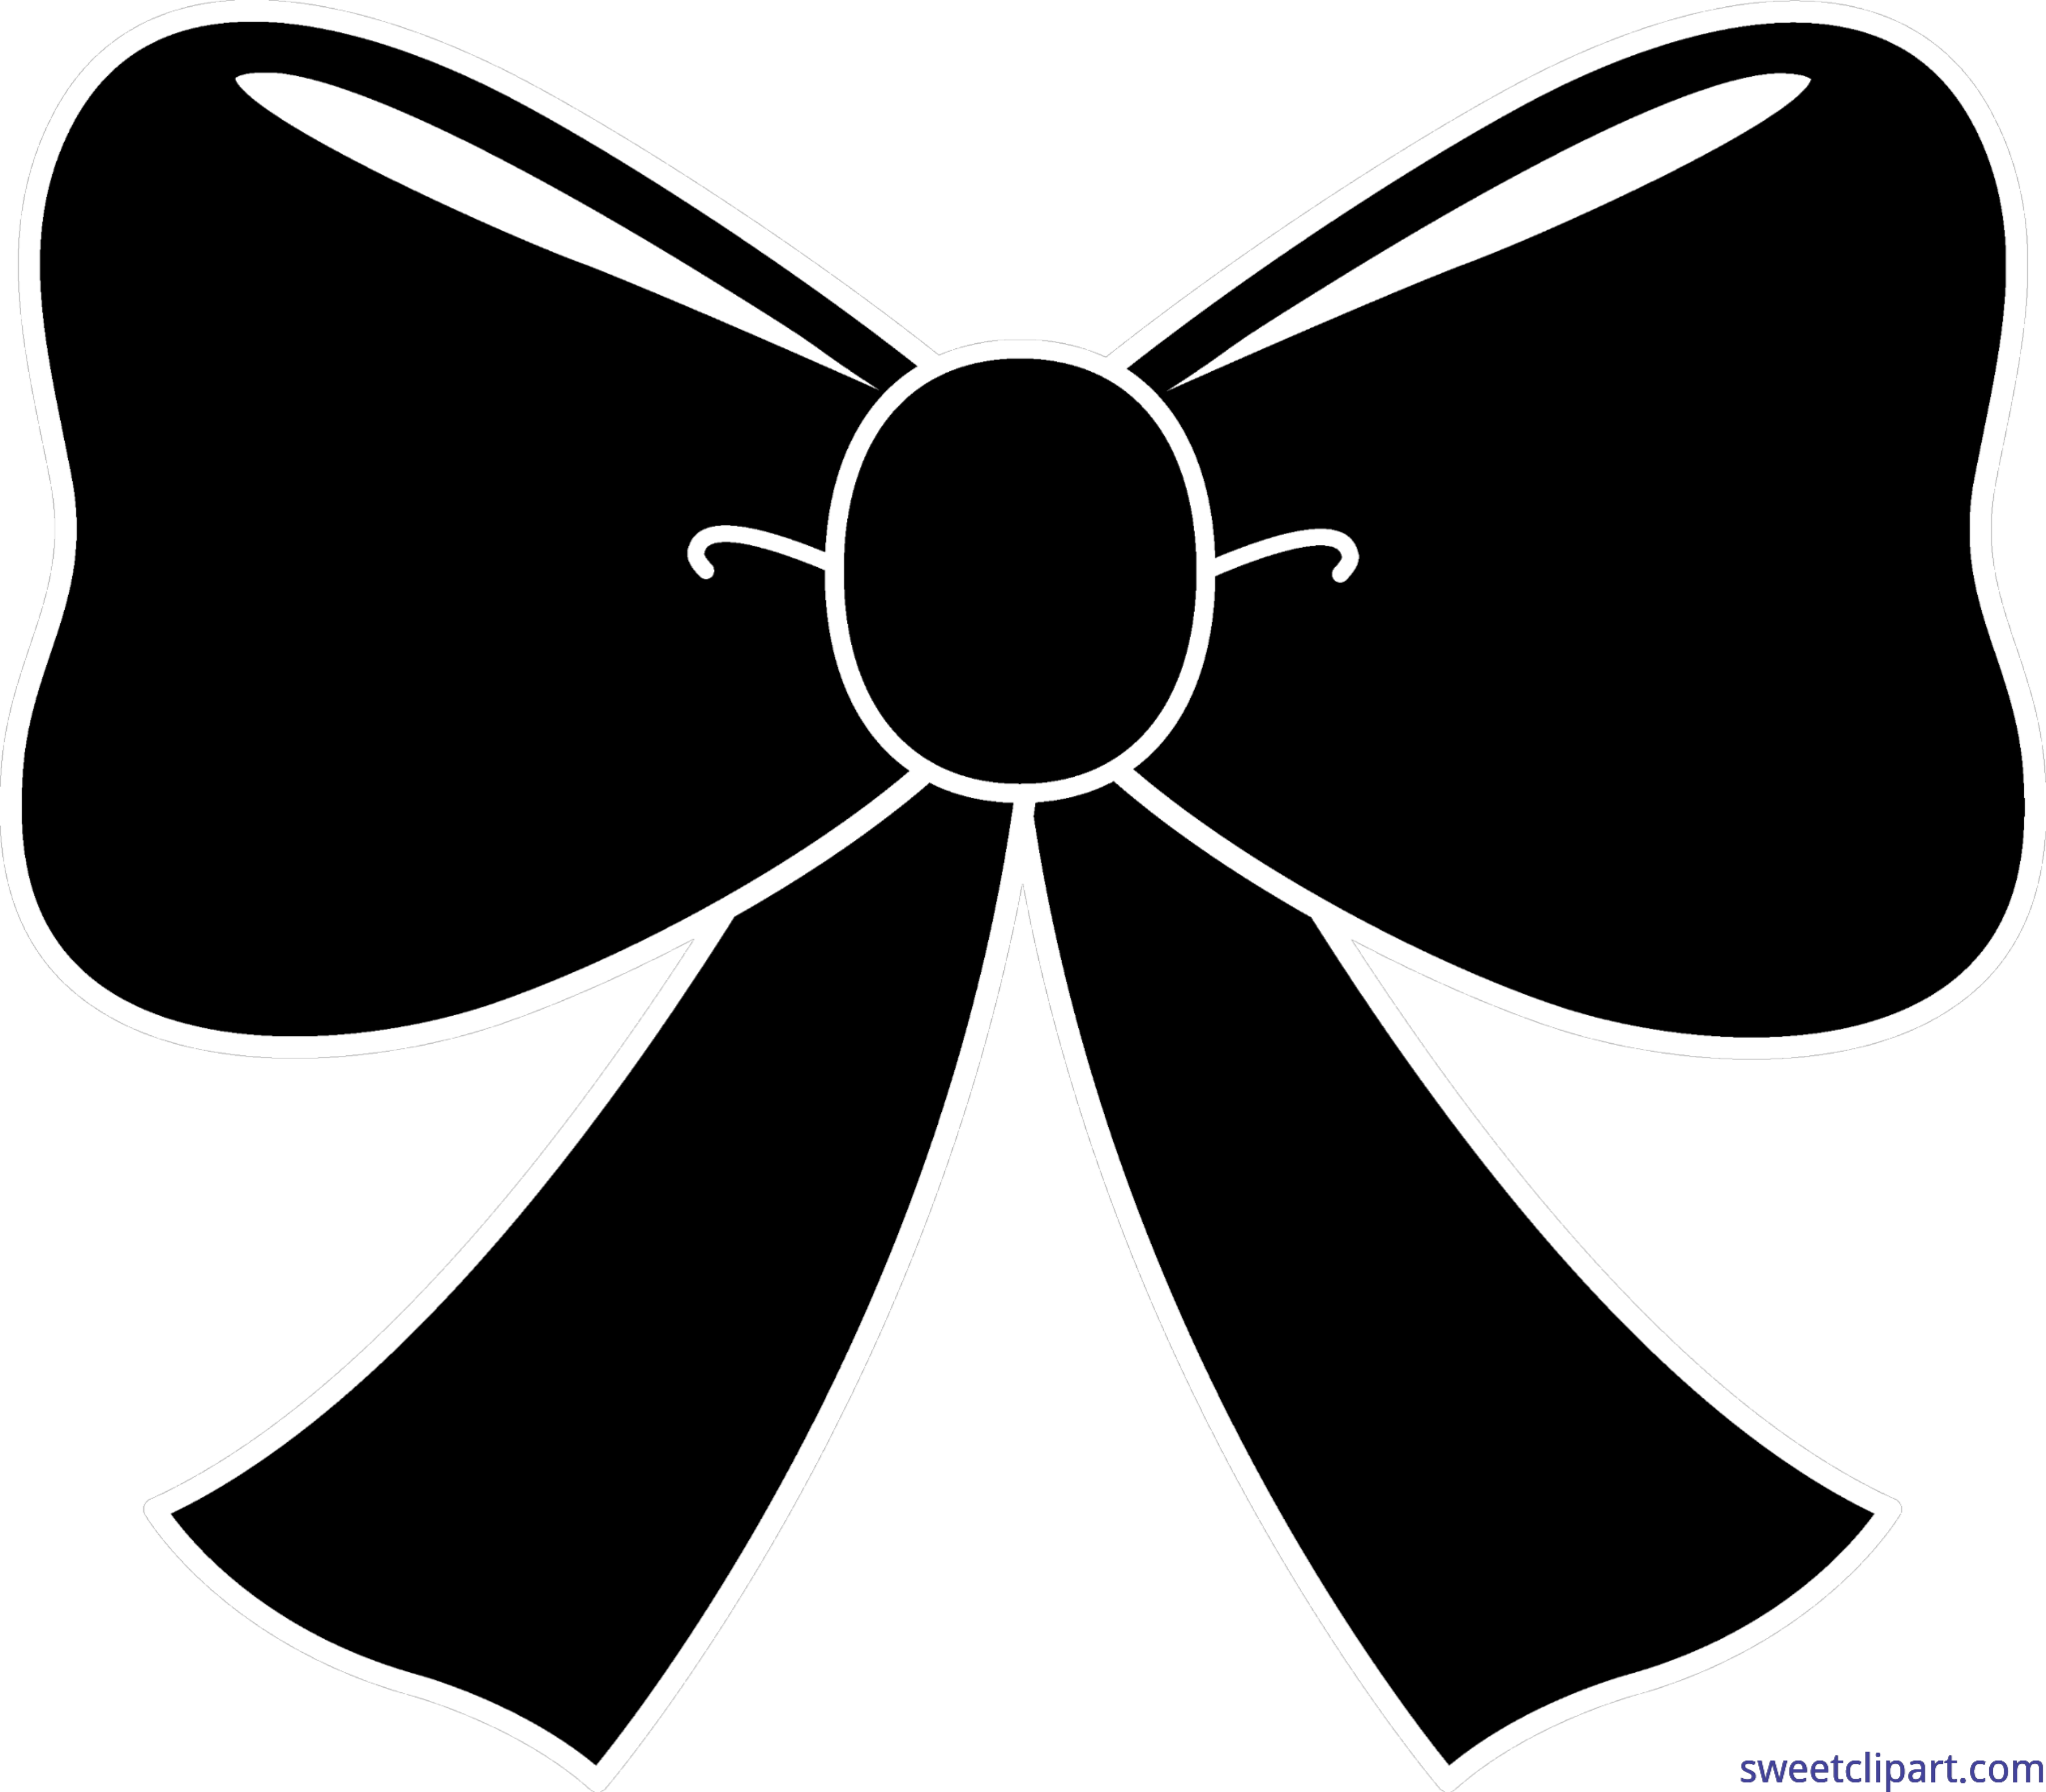 Black bow png. Silhouette clip art sweet